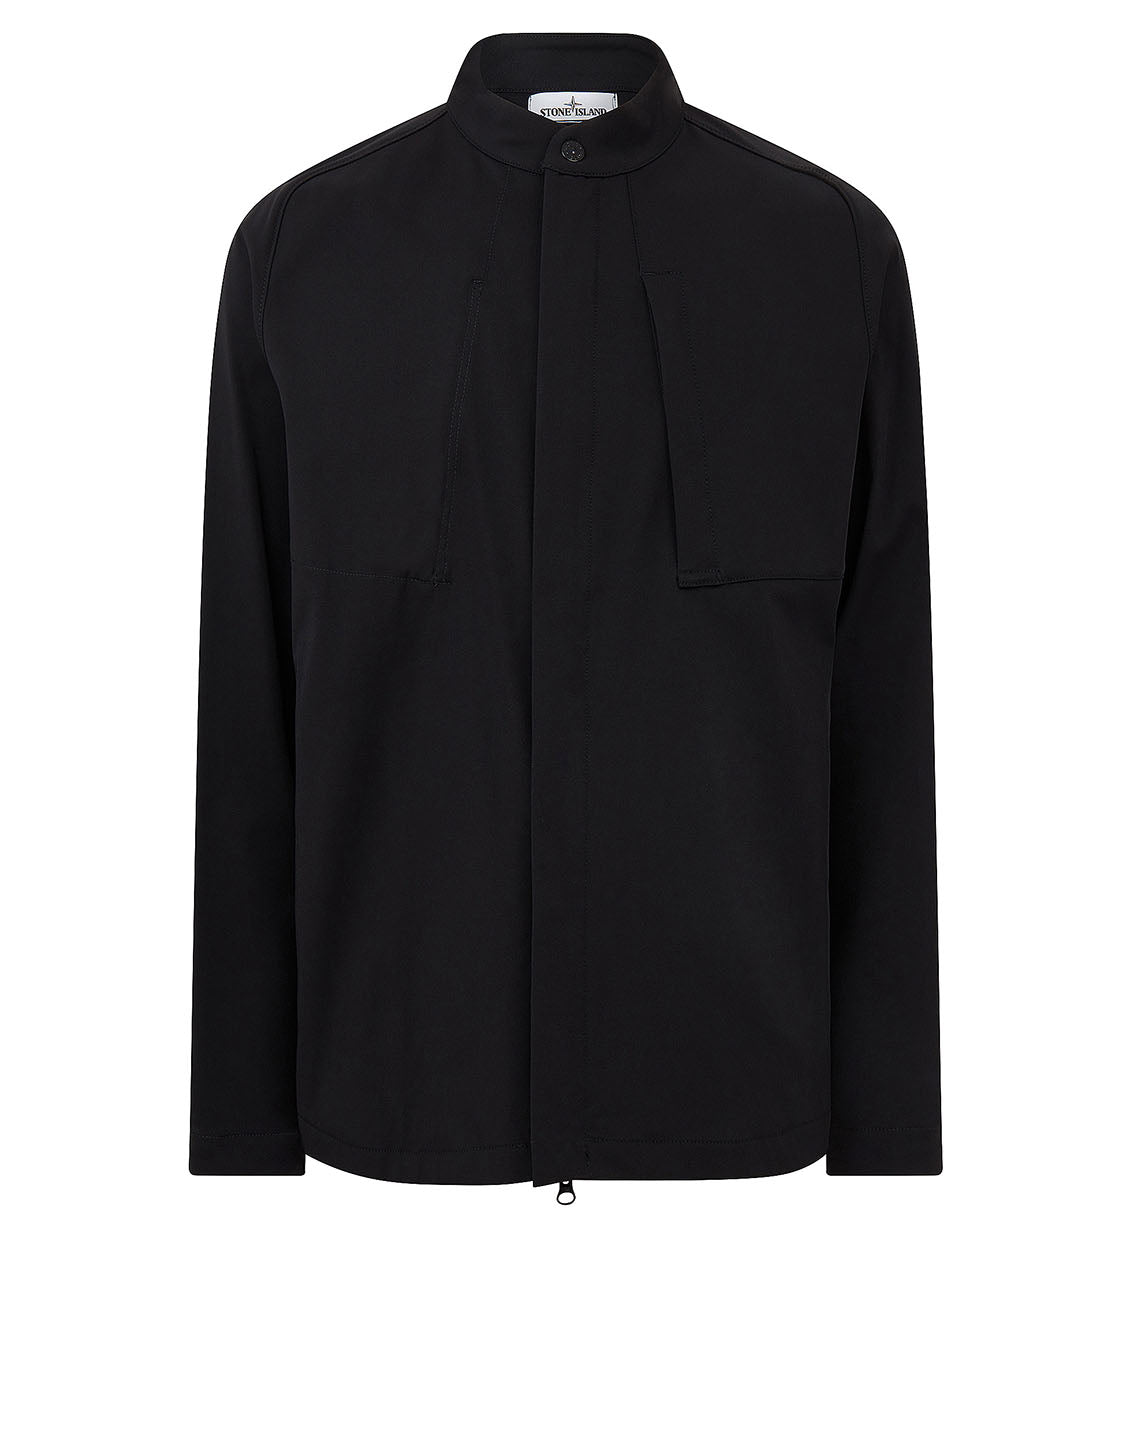 121X4 STONE ISLAND MARINA TWO-WAY STRETCH RECYCLED NYLON TWILL Overshirt in Black